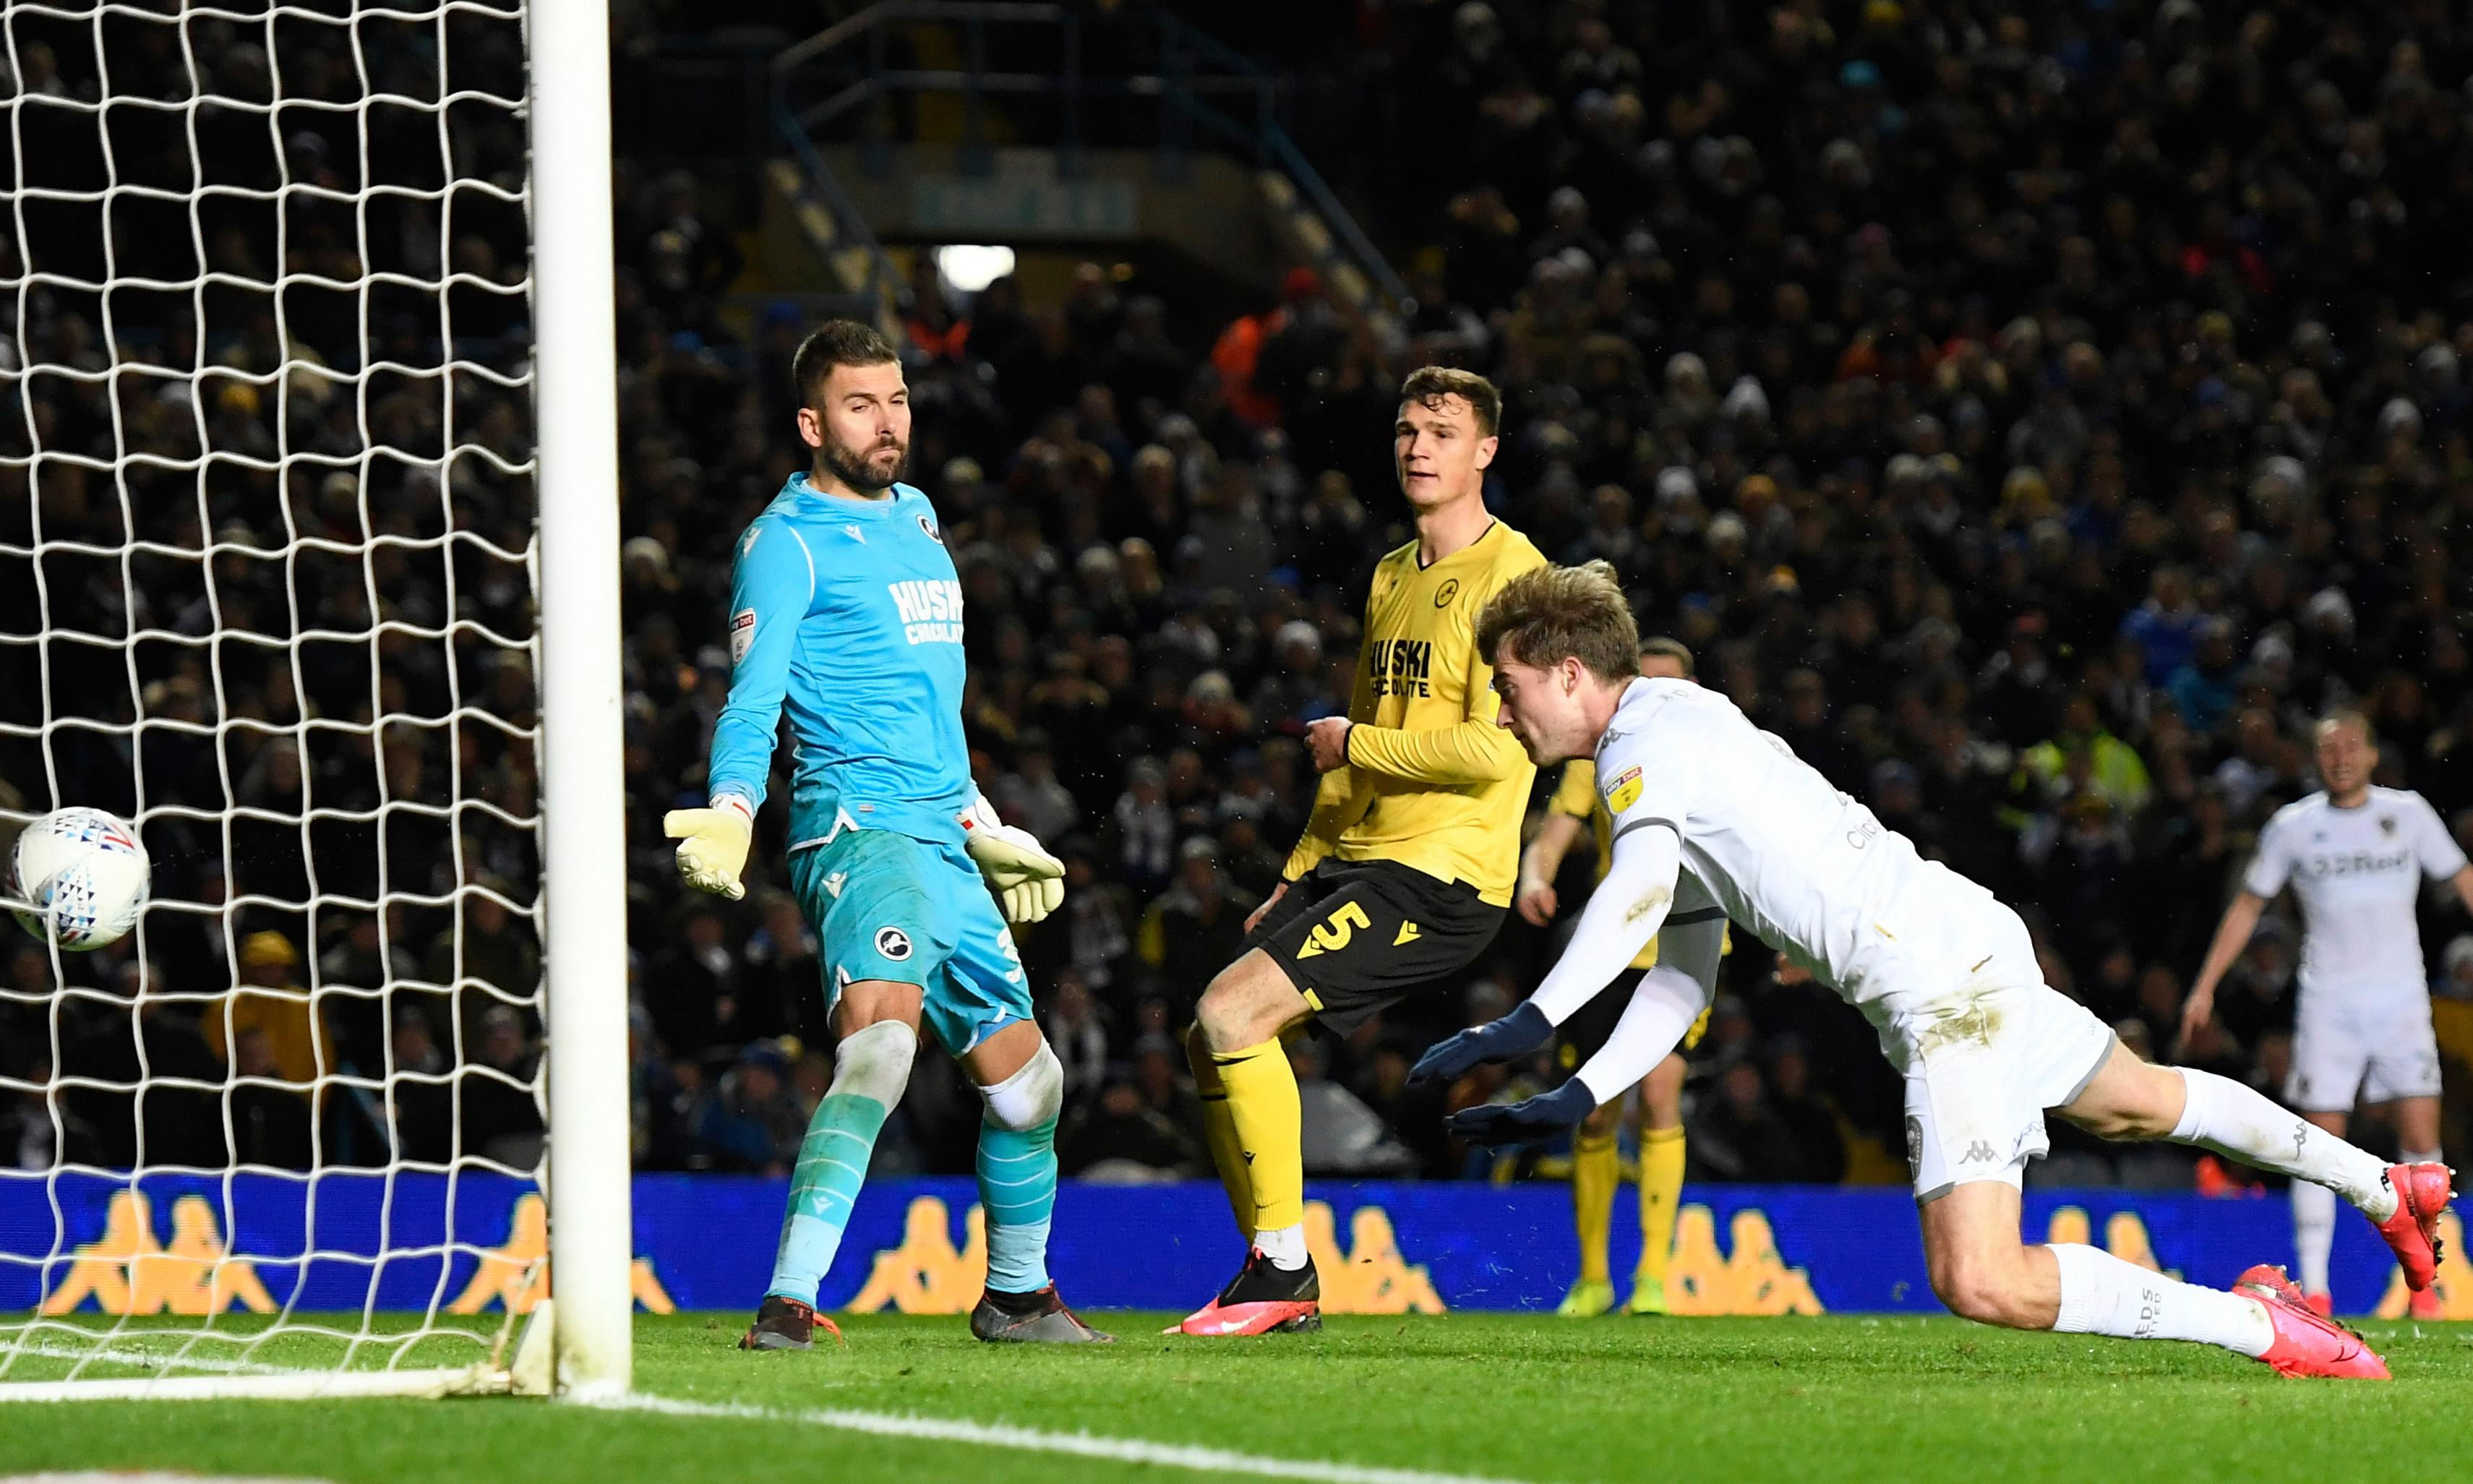 Championship: Bamford's double fires Leeds top after West Brom lose again